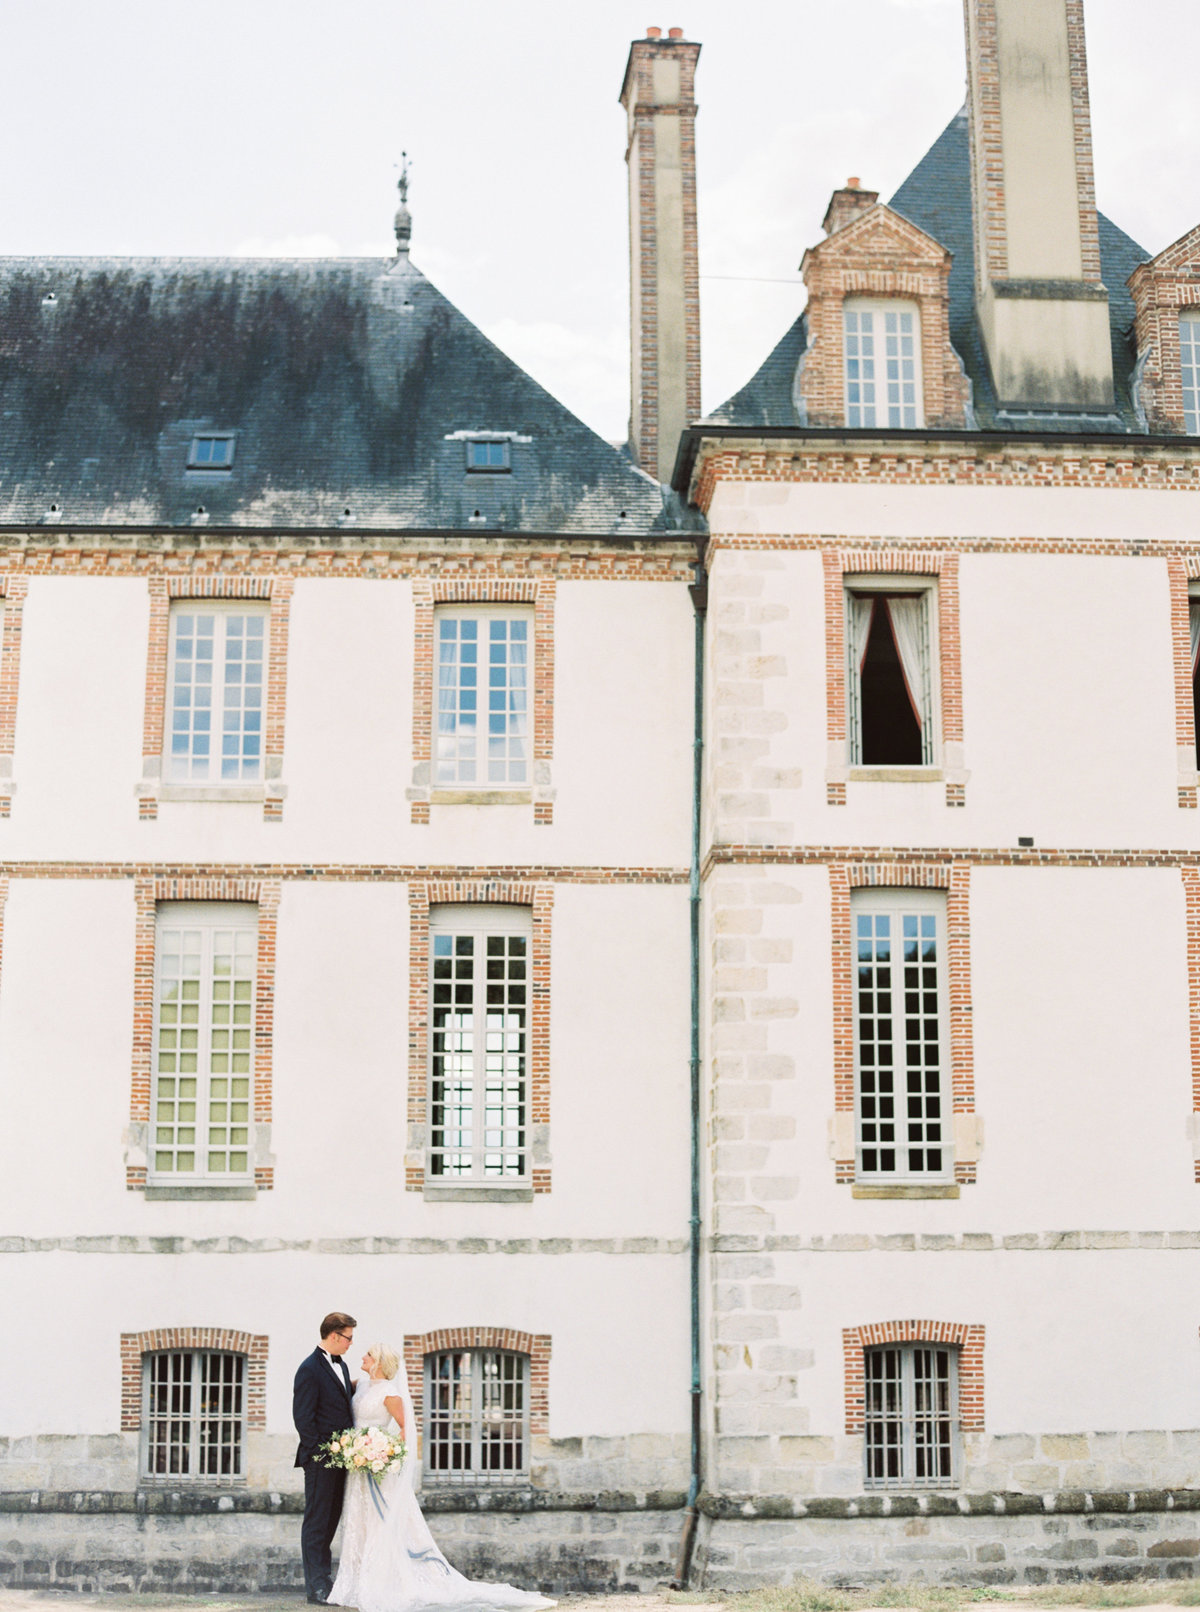 Paris France Wedding - Mary Claire Photography-30